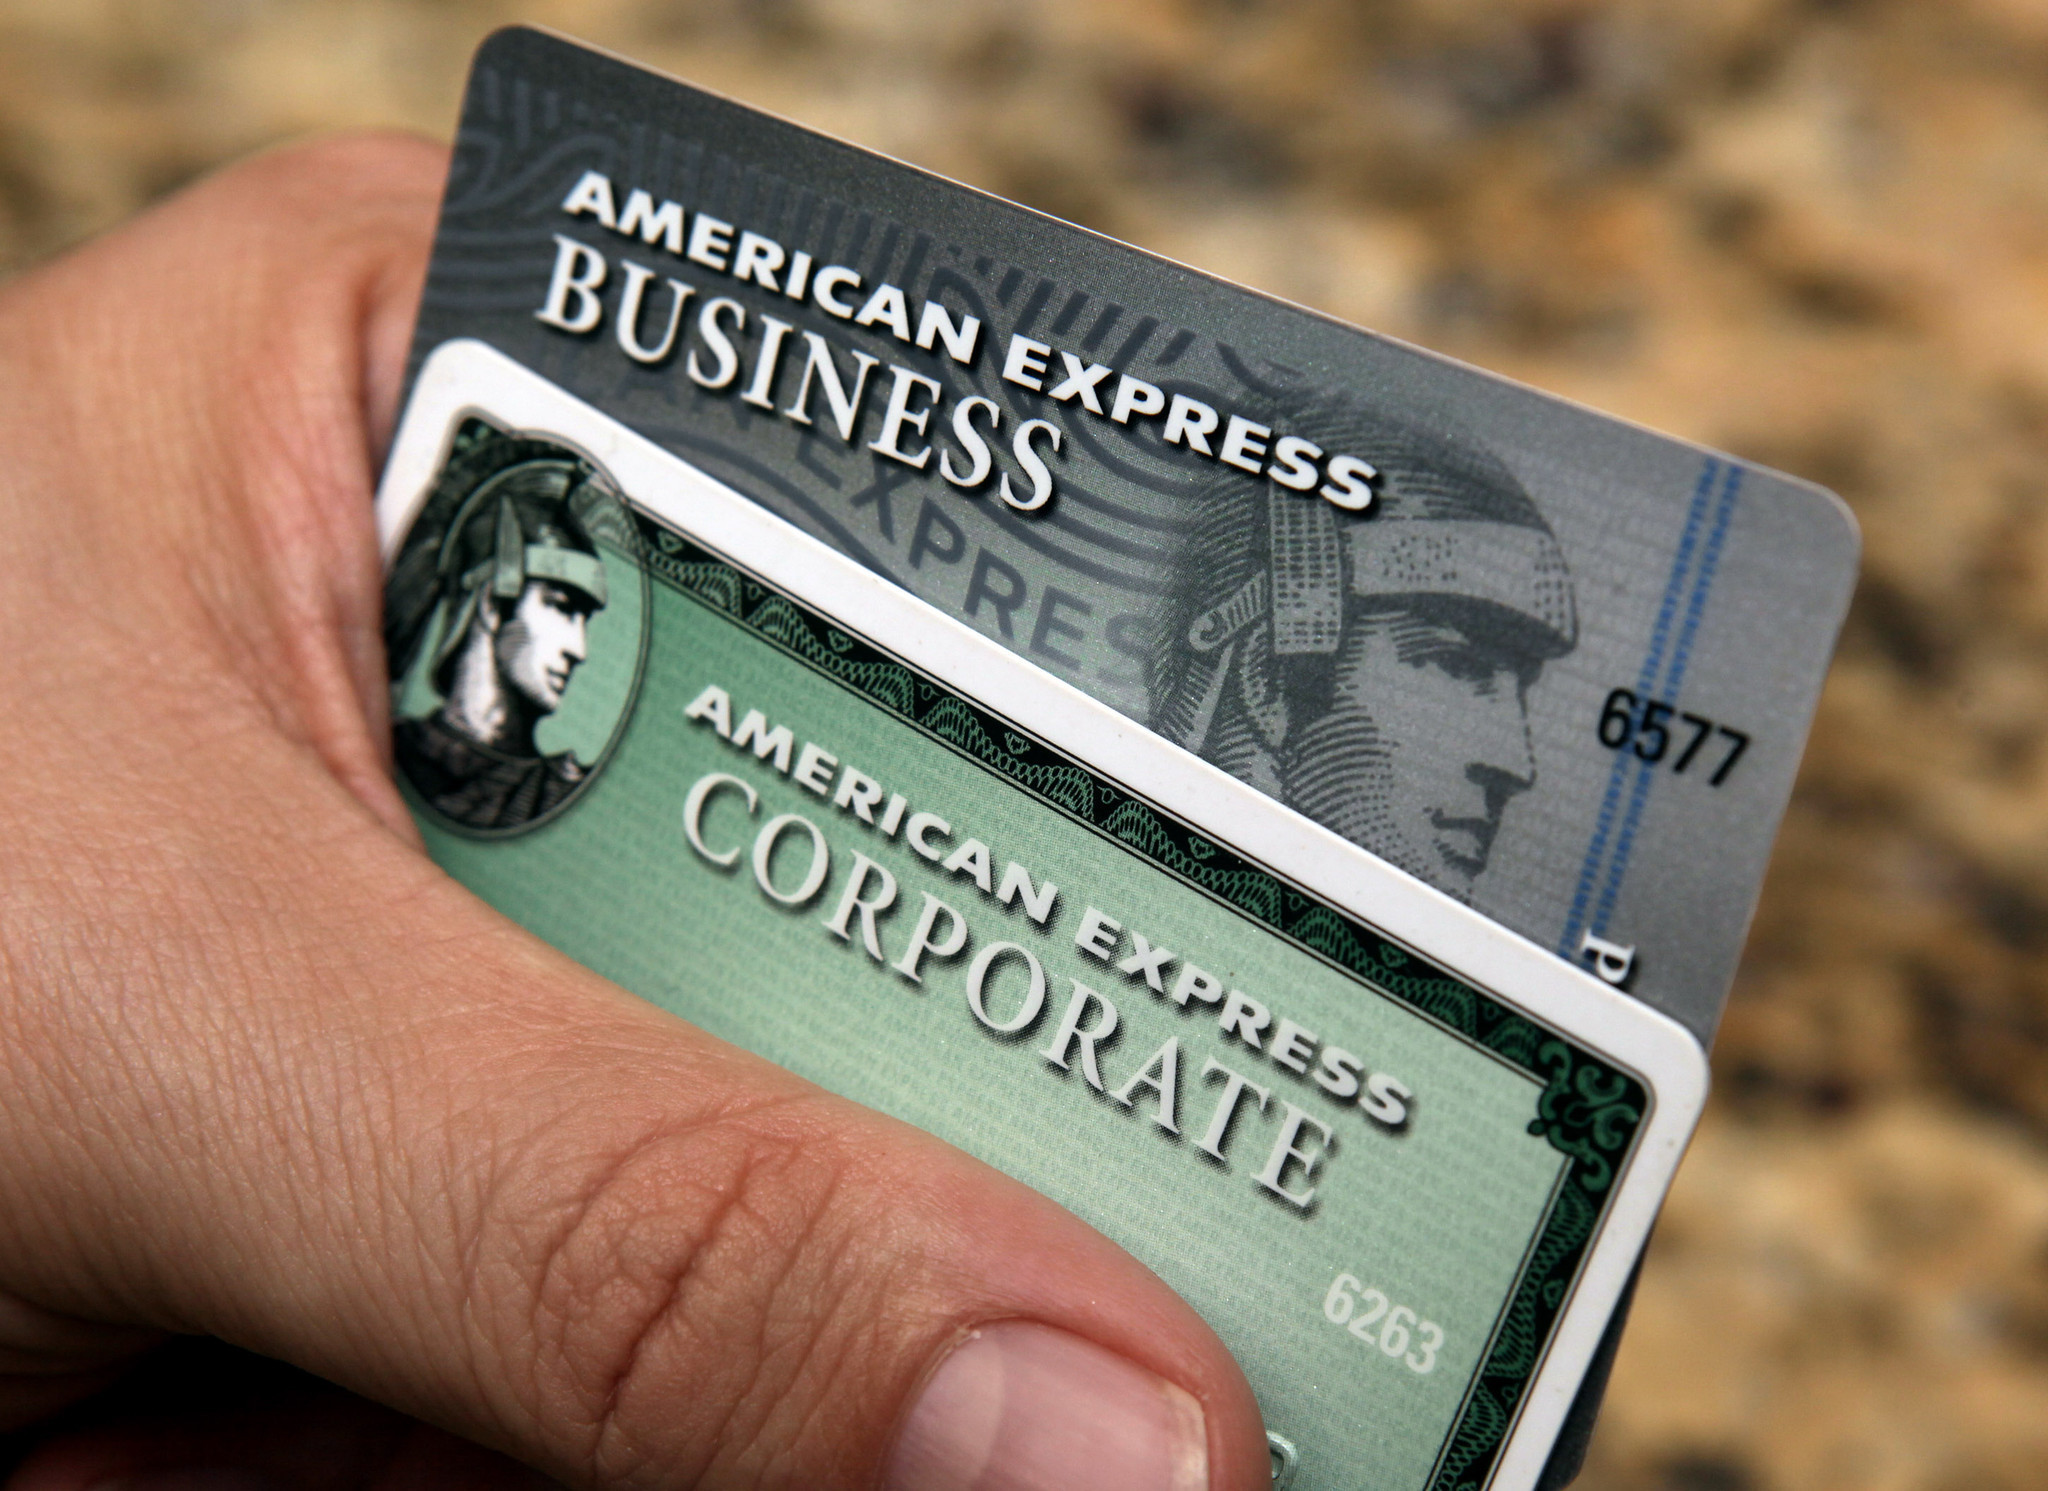 New American Express Business Credit Card Business Cards